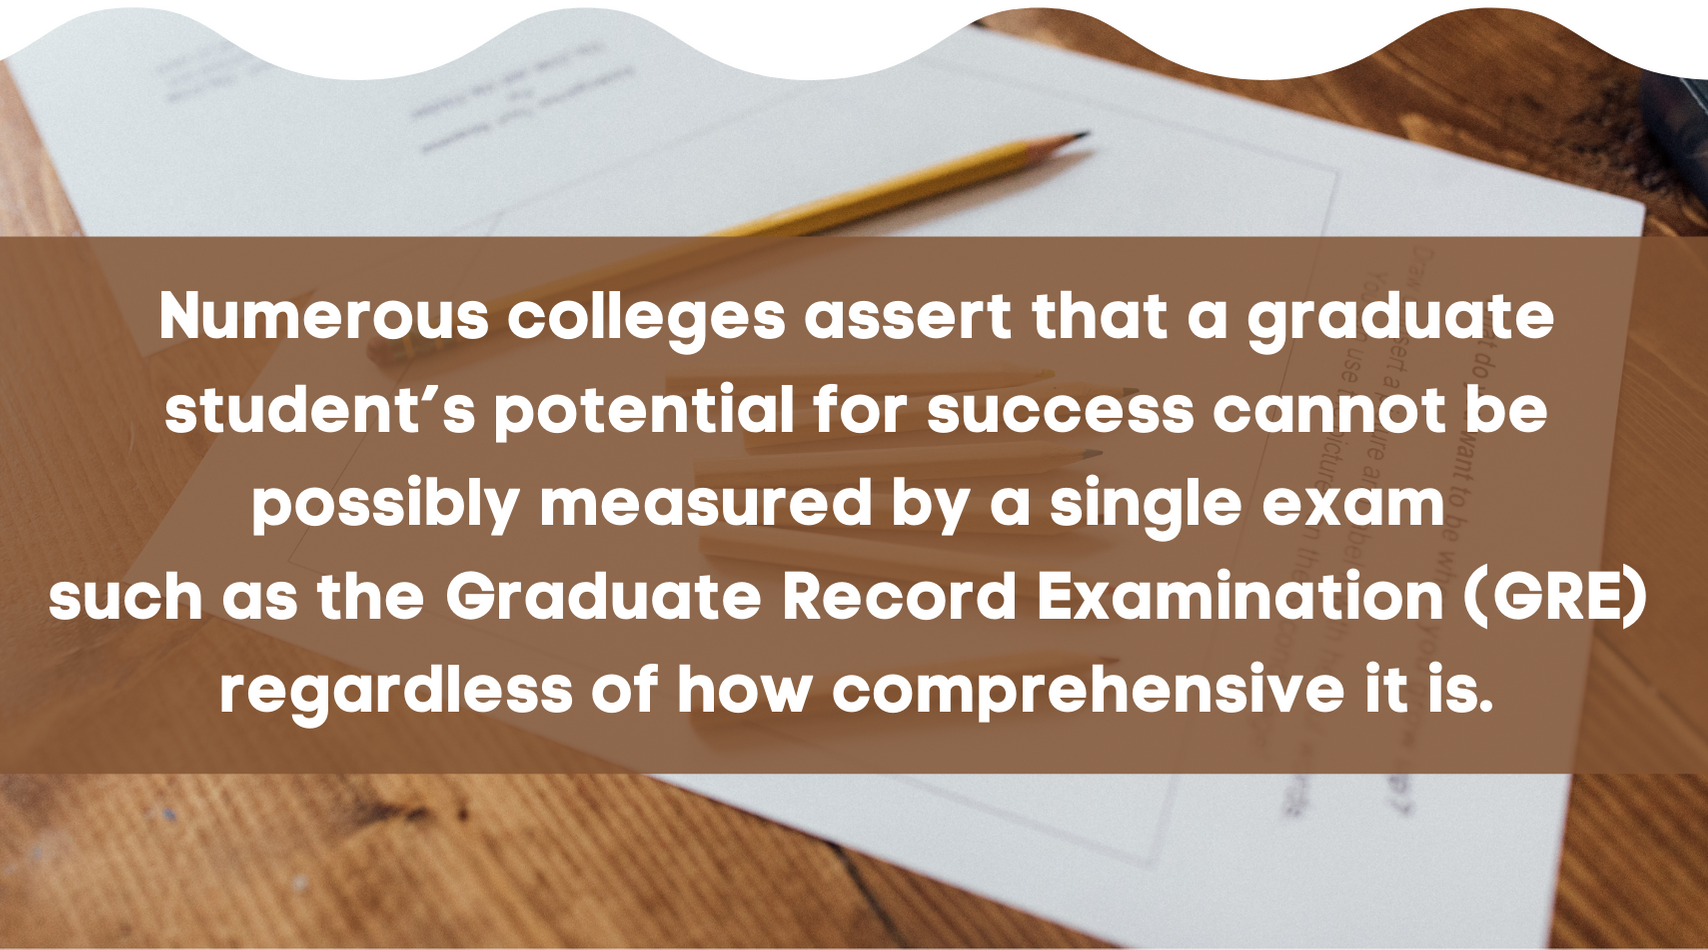 Non-GRE Colleges fact 4